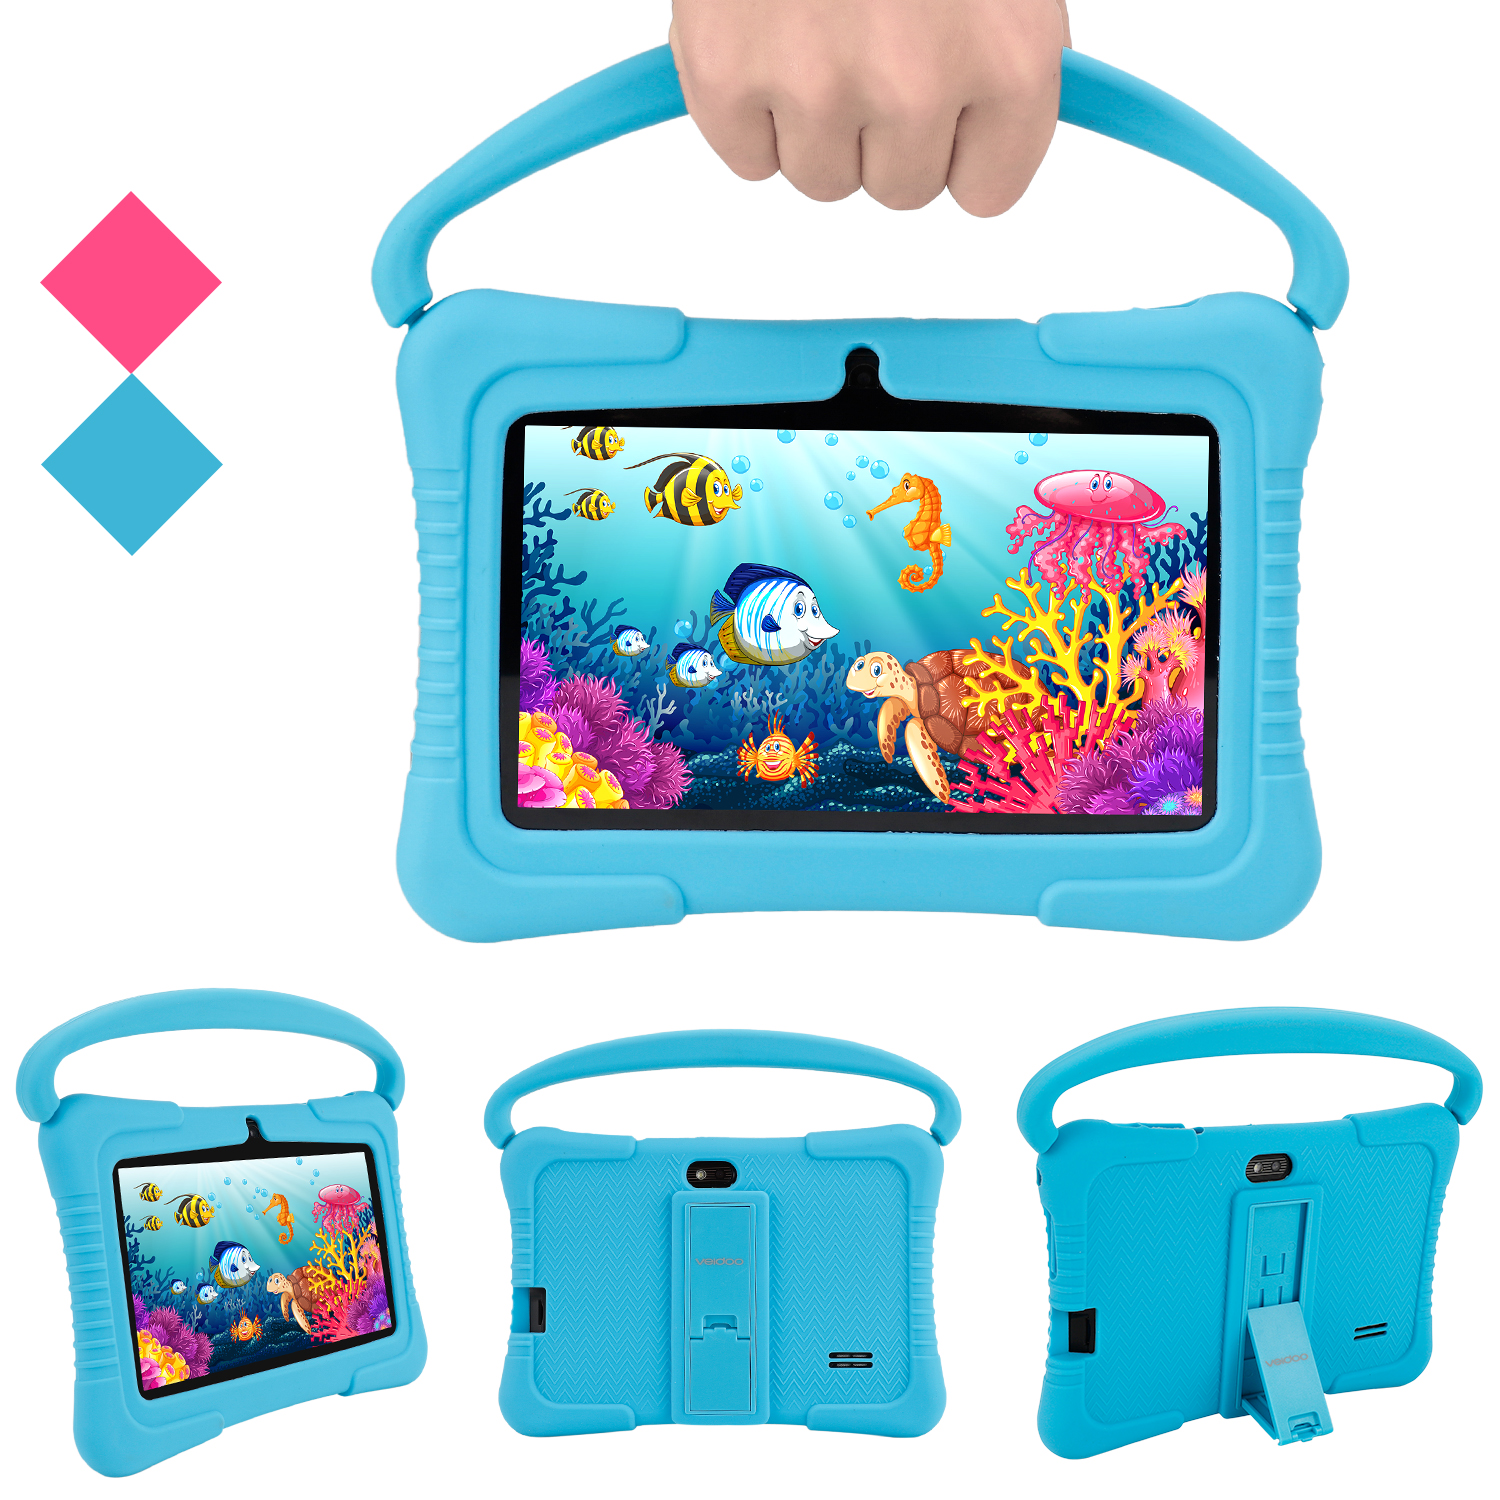 7 Inch New Kids Tablet Handle Android Education Baby Learning Tablet Pc